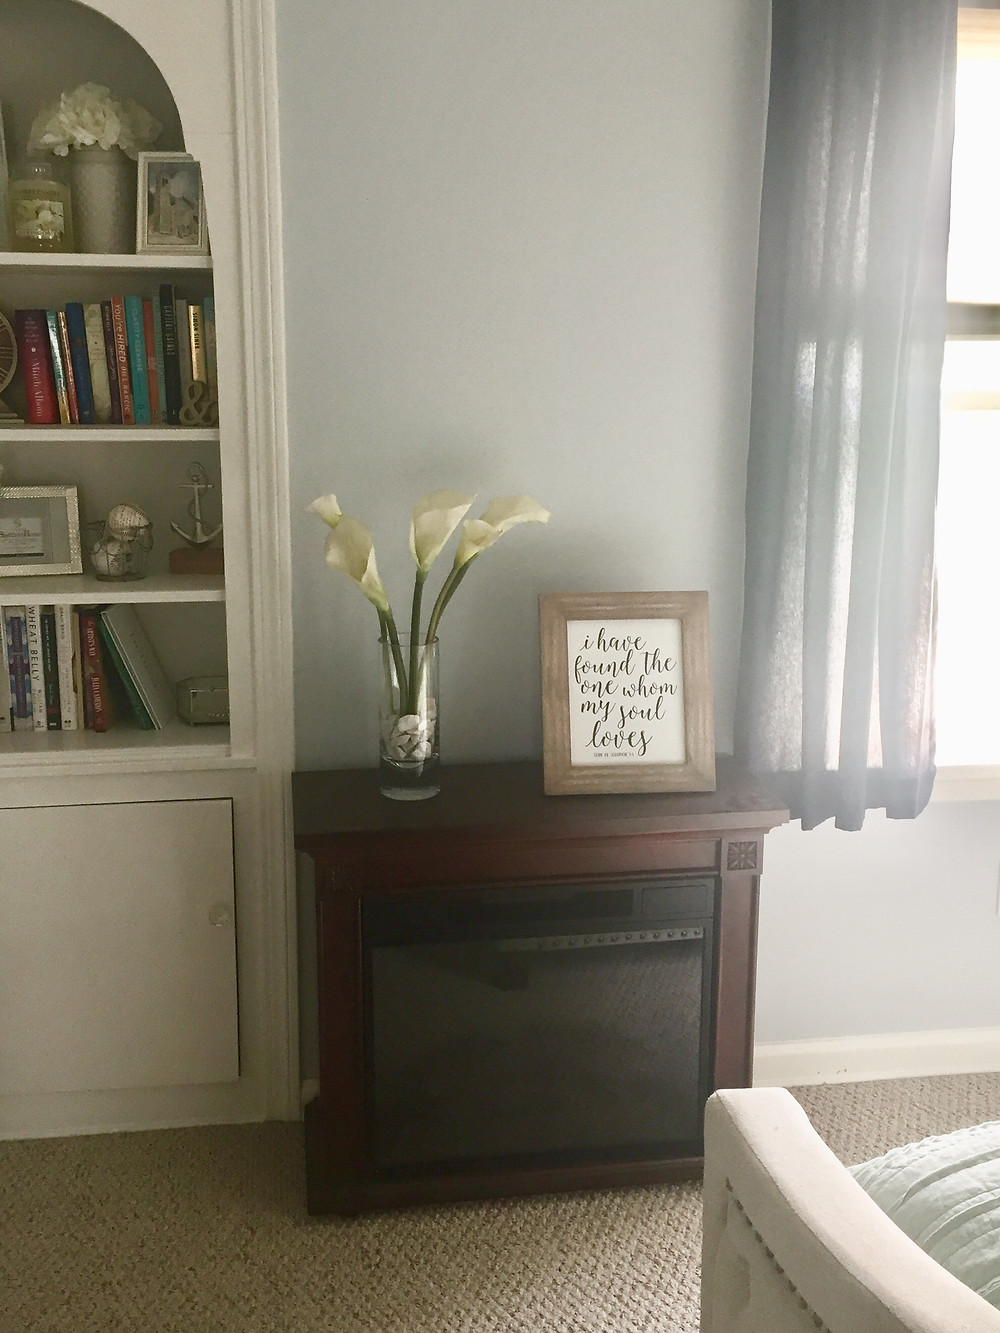 Bedroom fireplace with flowers and framed photo